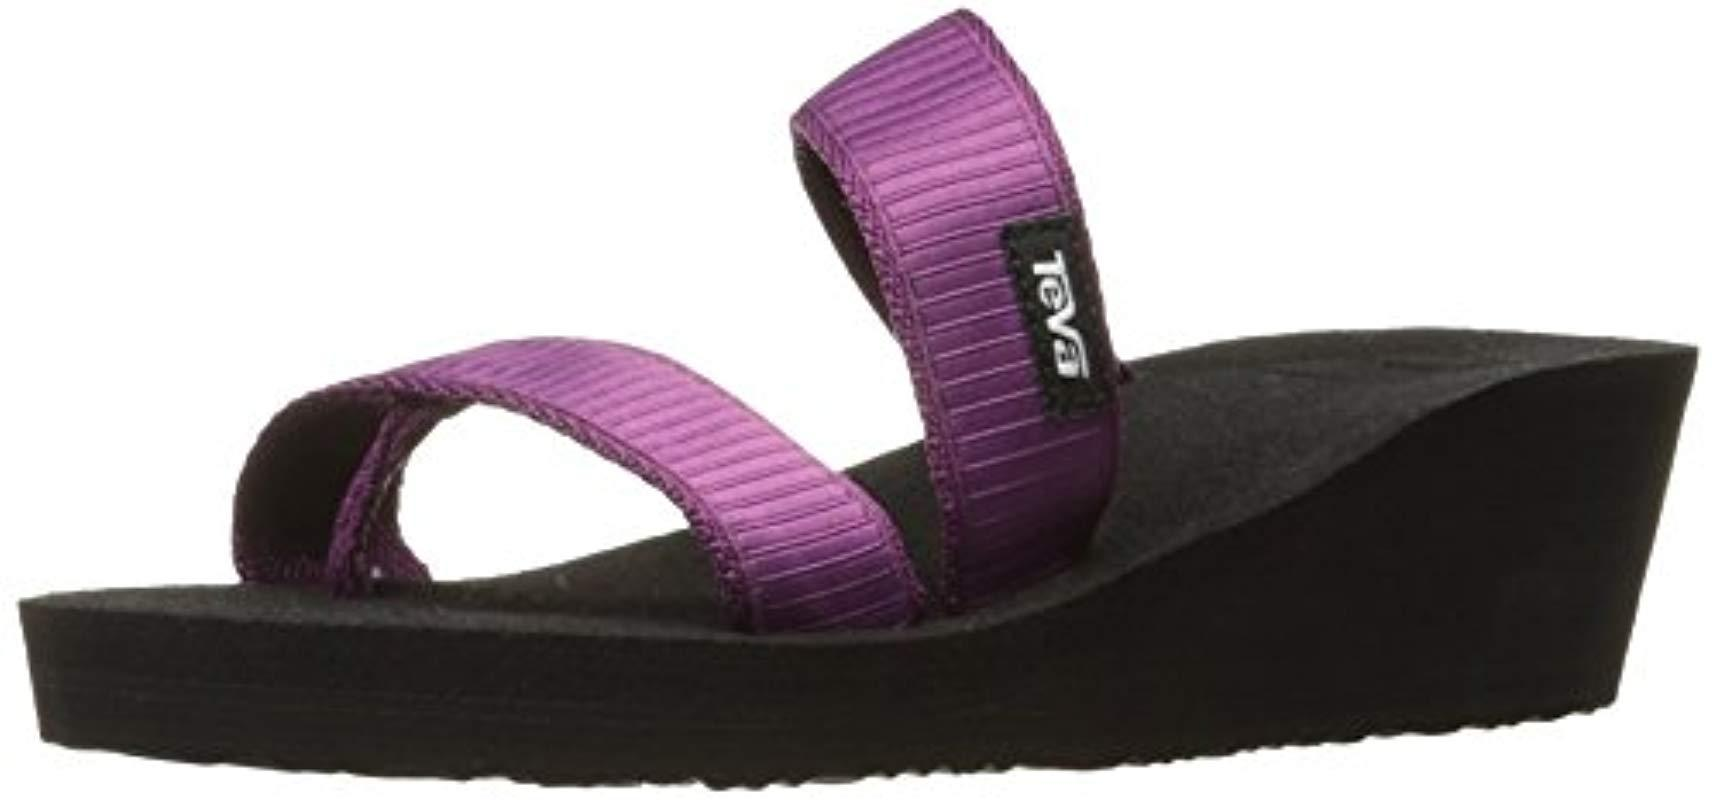 3bacdd3e699b Teva - Purple W Mush Mandalyn Wedge Loma Sandal - Lyst. View fullscreen